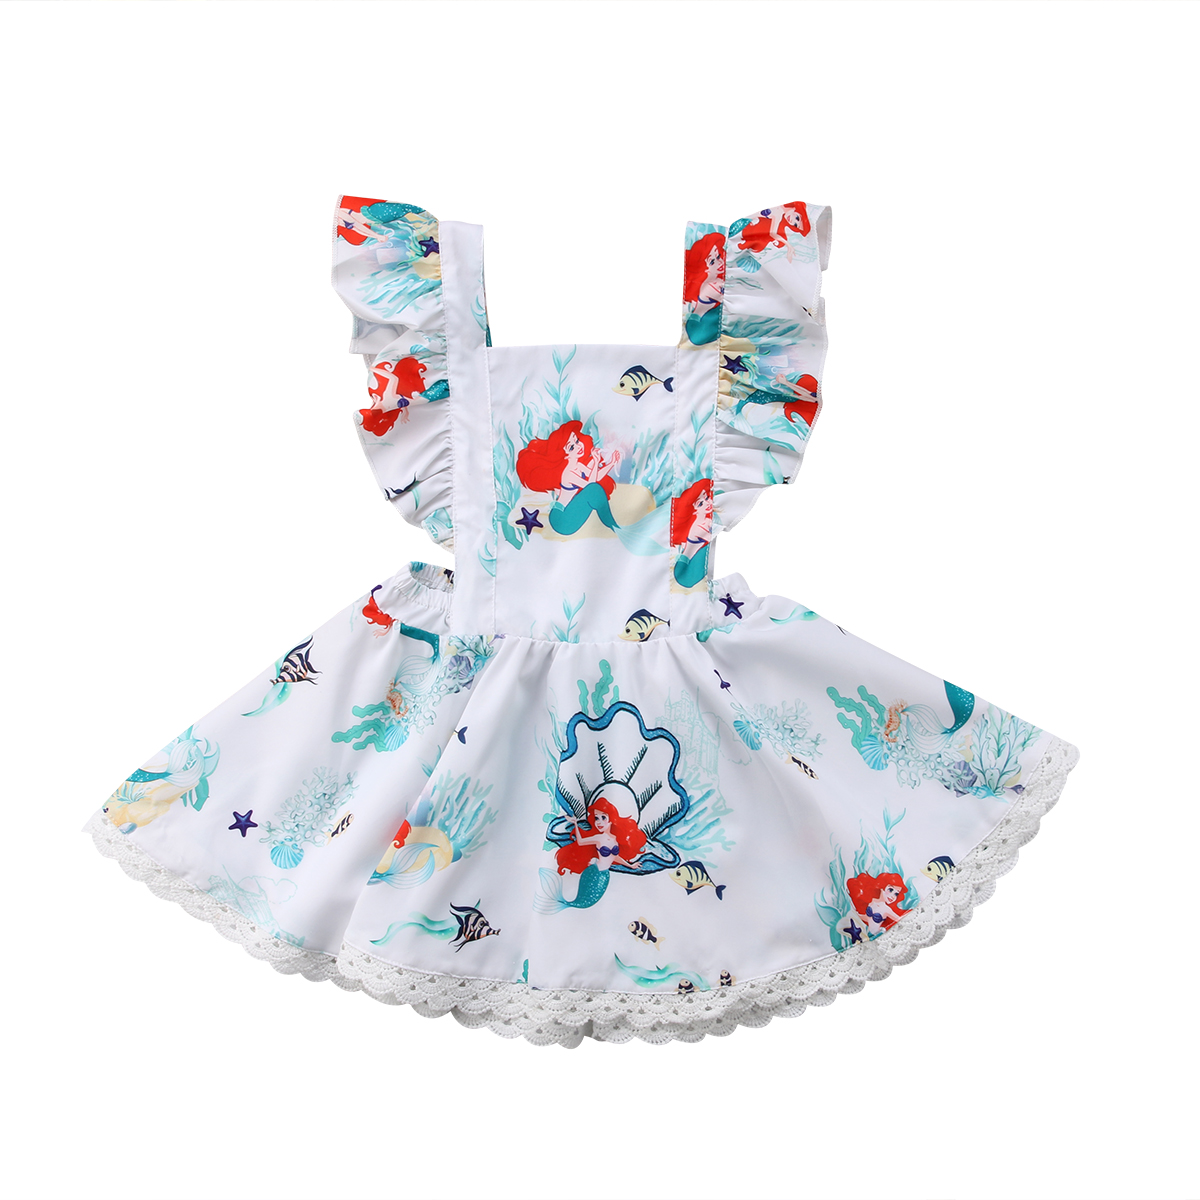 Toddler Baby Kids Girl Lace Clothes Dresses Summer Backless Sleeveless Cute Mini Party Dress Girls 0-5T ems dhl free shipping toddler little girl s 2017 princess ruffles layers sleeveless lace dress summer style suspender